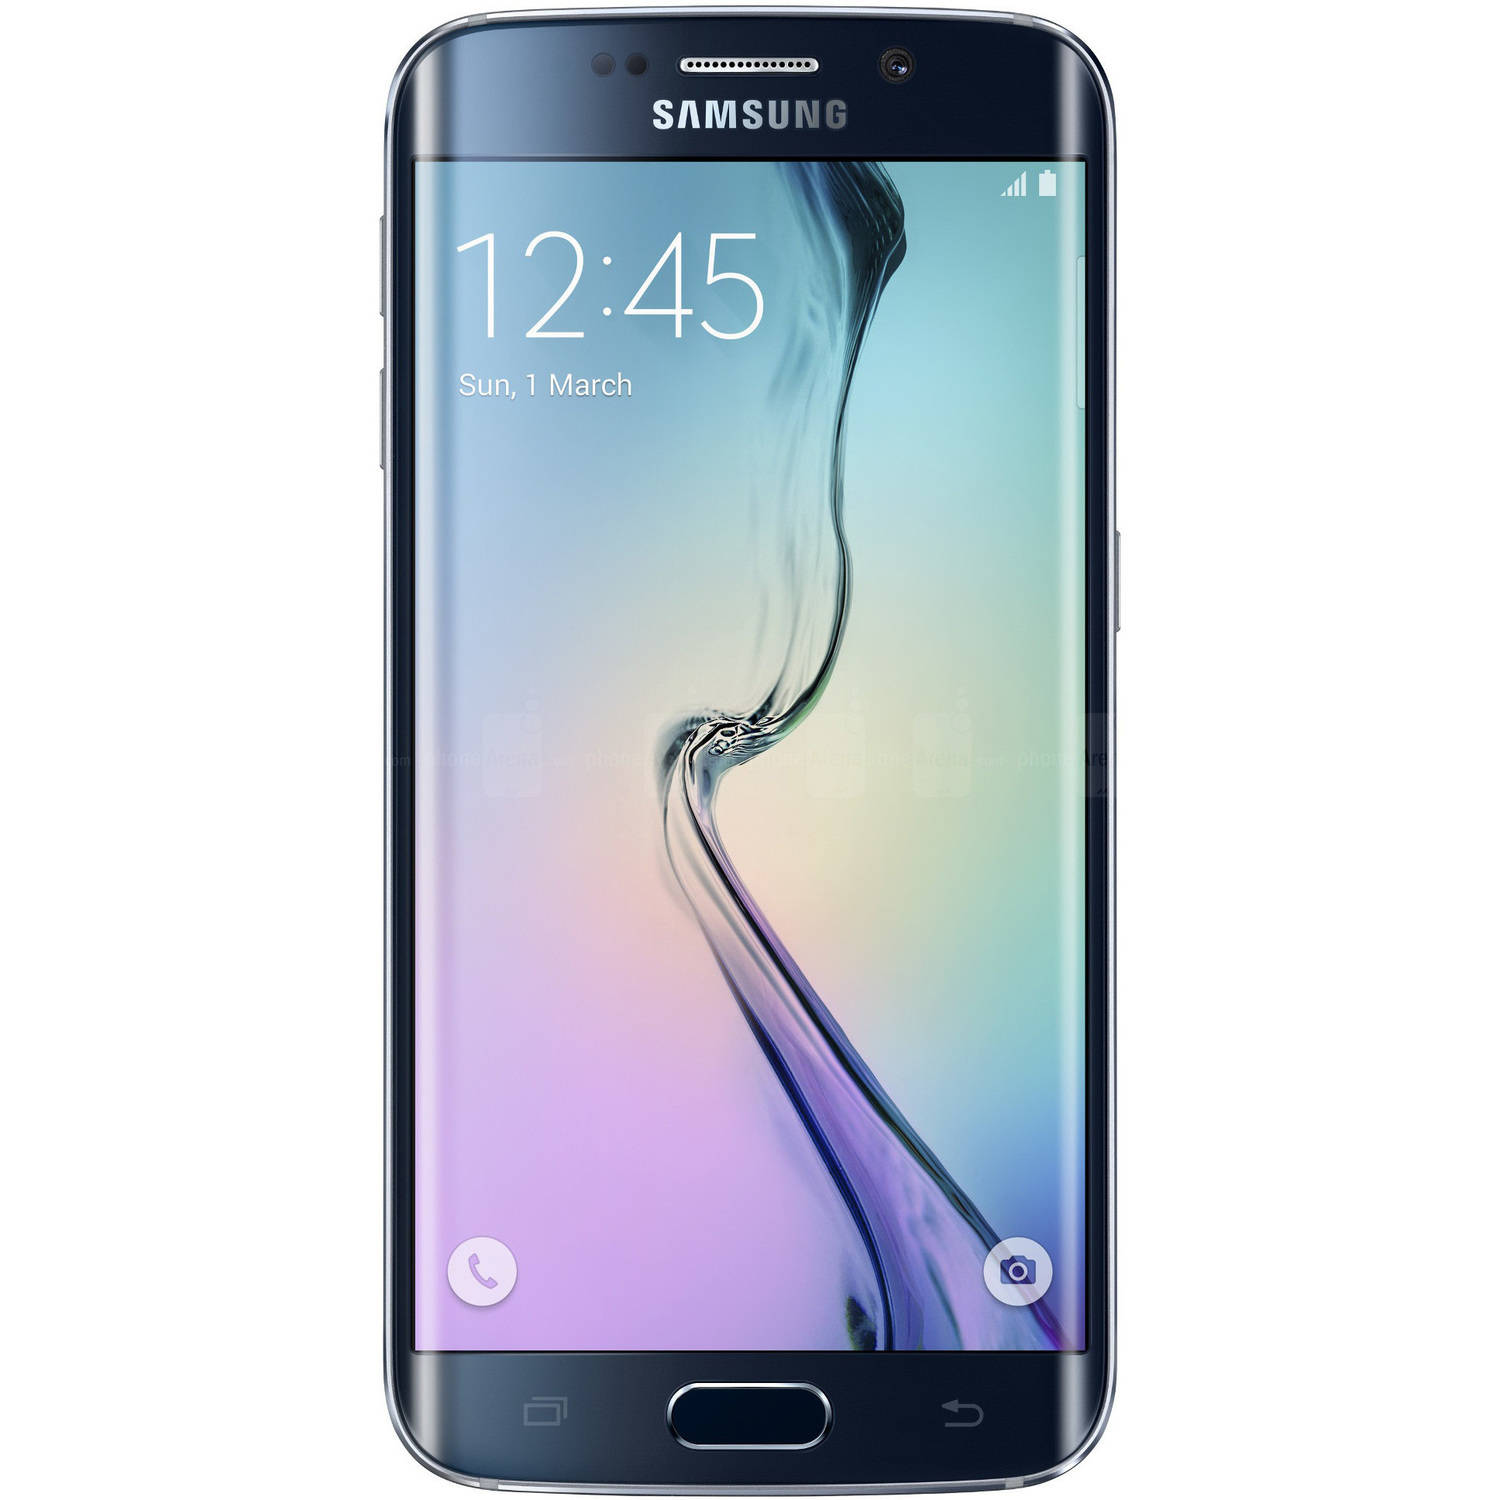 AT&T Samsung Galaxy S6 edge G925A 32GB Smartphone (Unlocked), Black